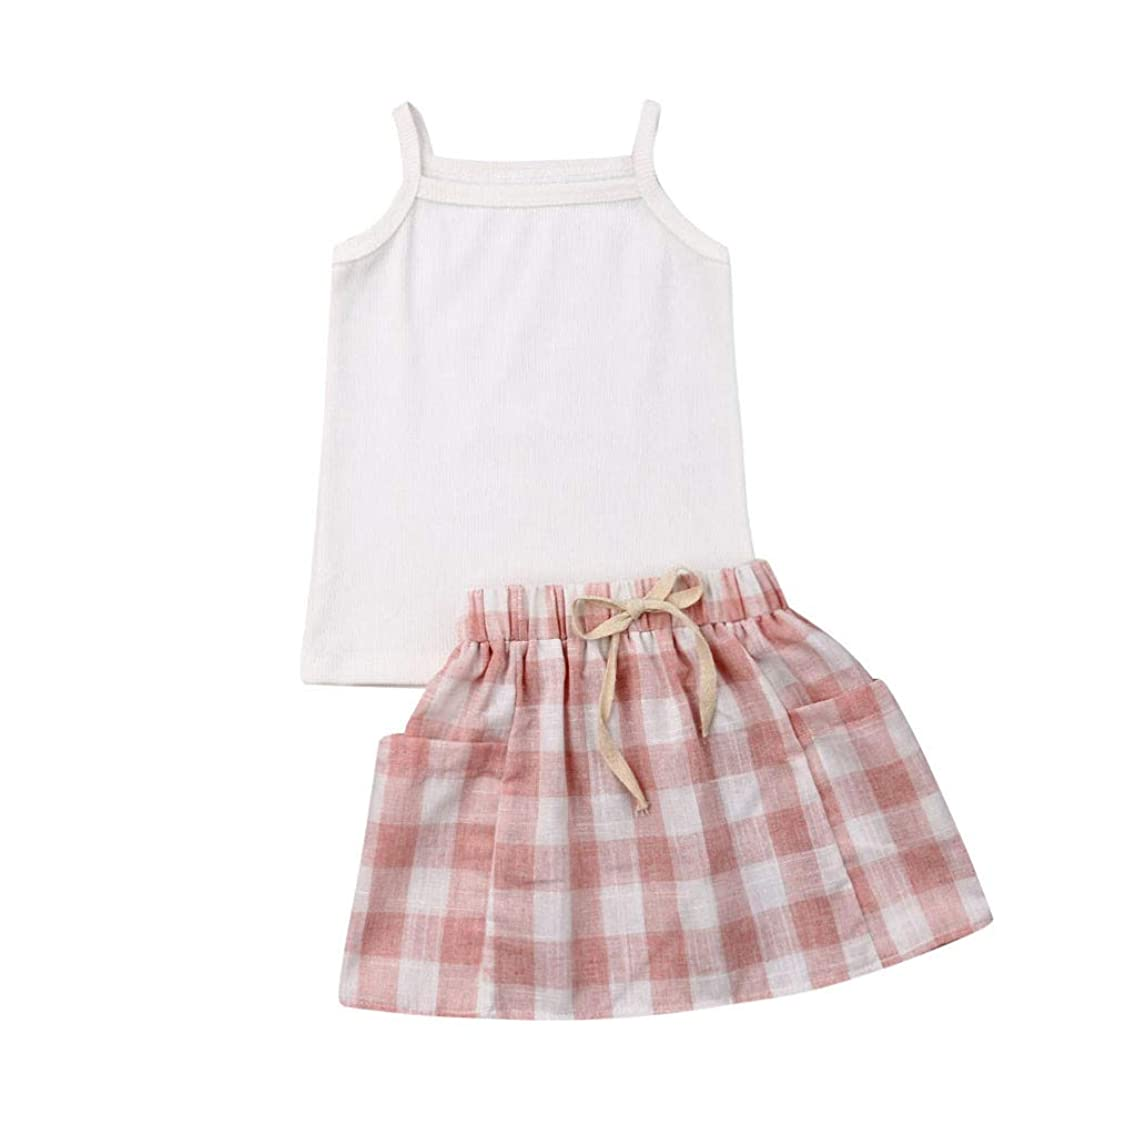 Baby Toddler Girls Summer Clothes Set 1-4 Years Old Child Sleeveless Vest Tank Tops and Plaid Skirts Outfits